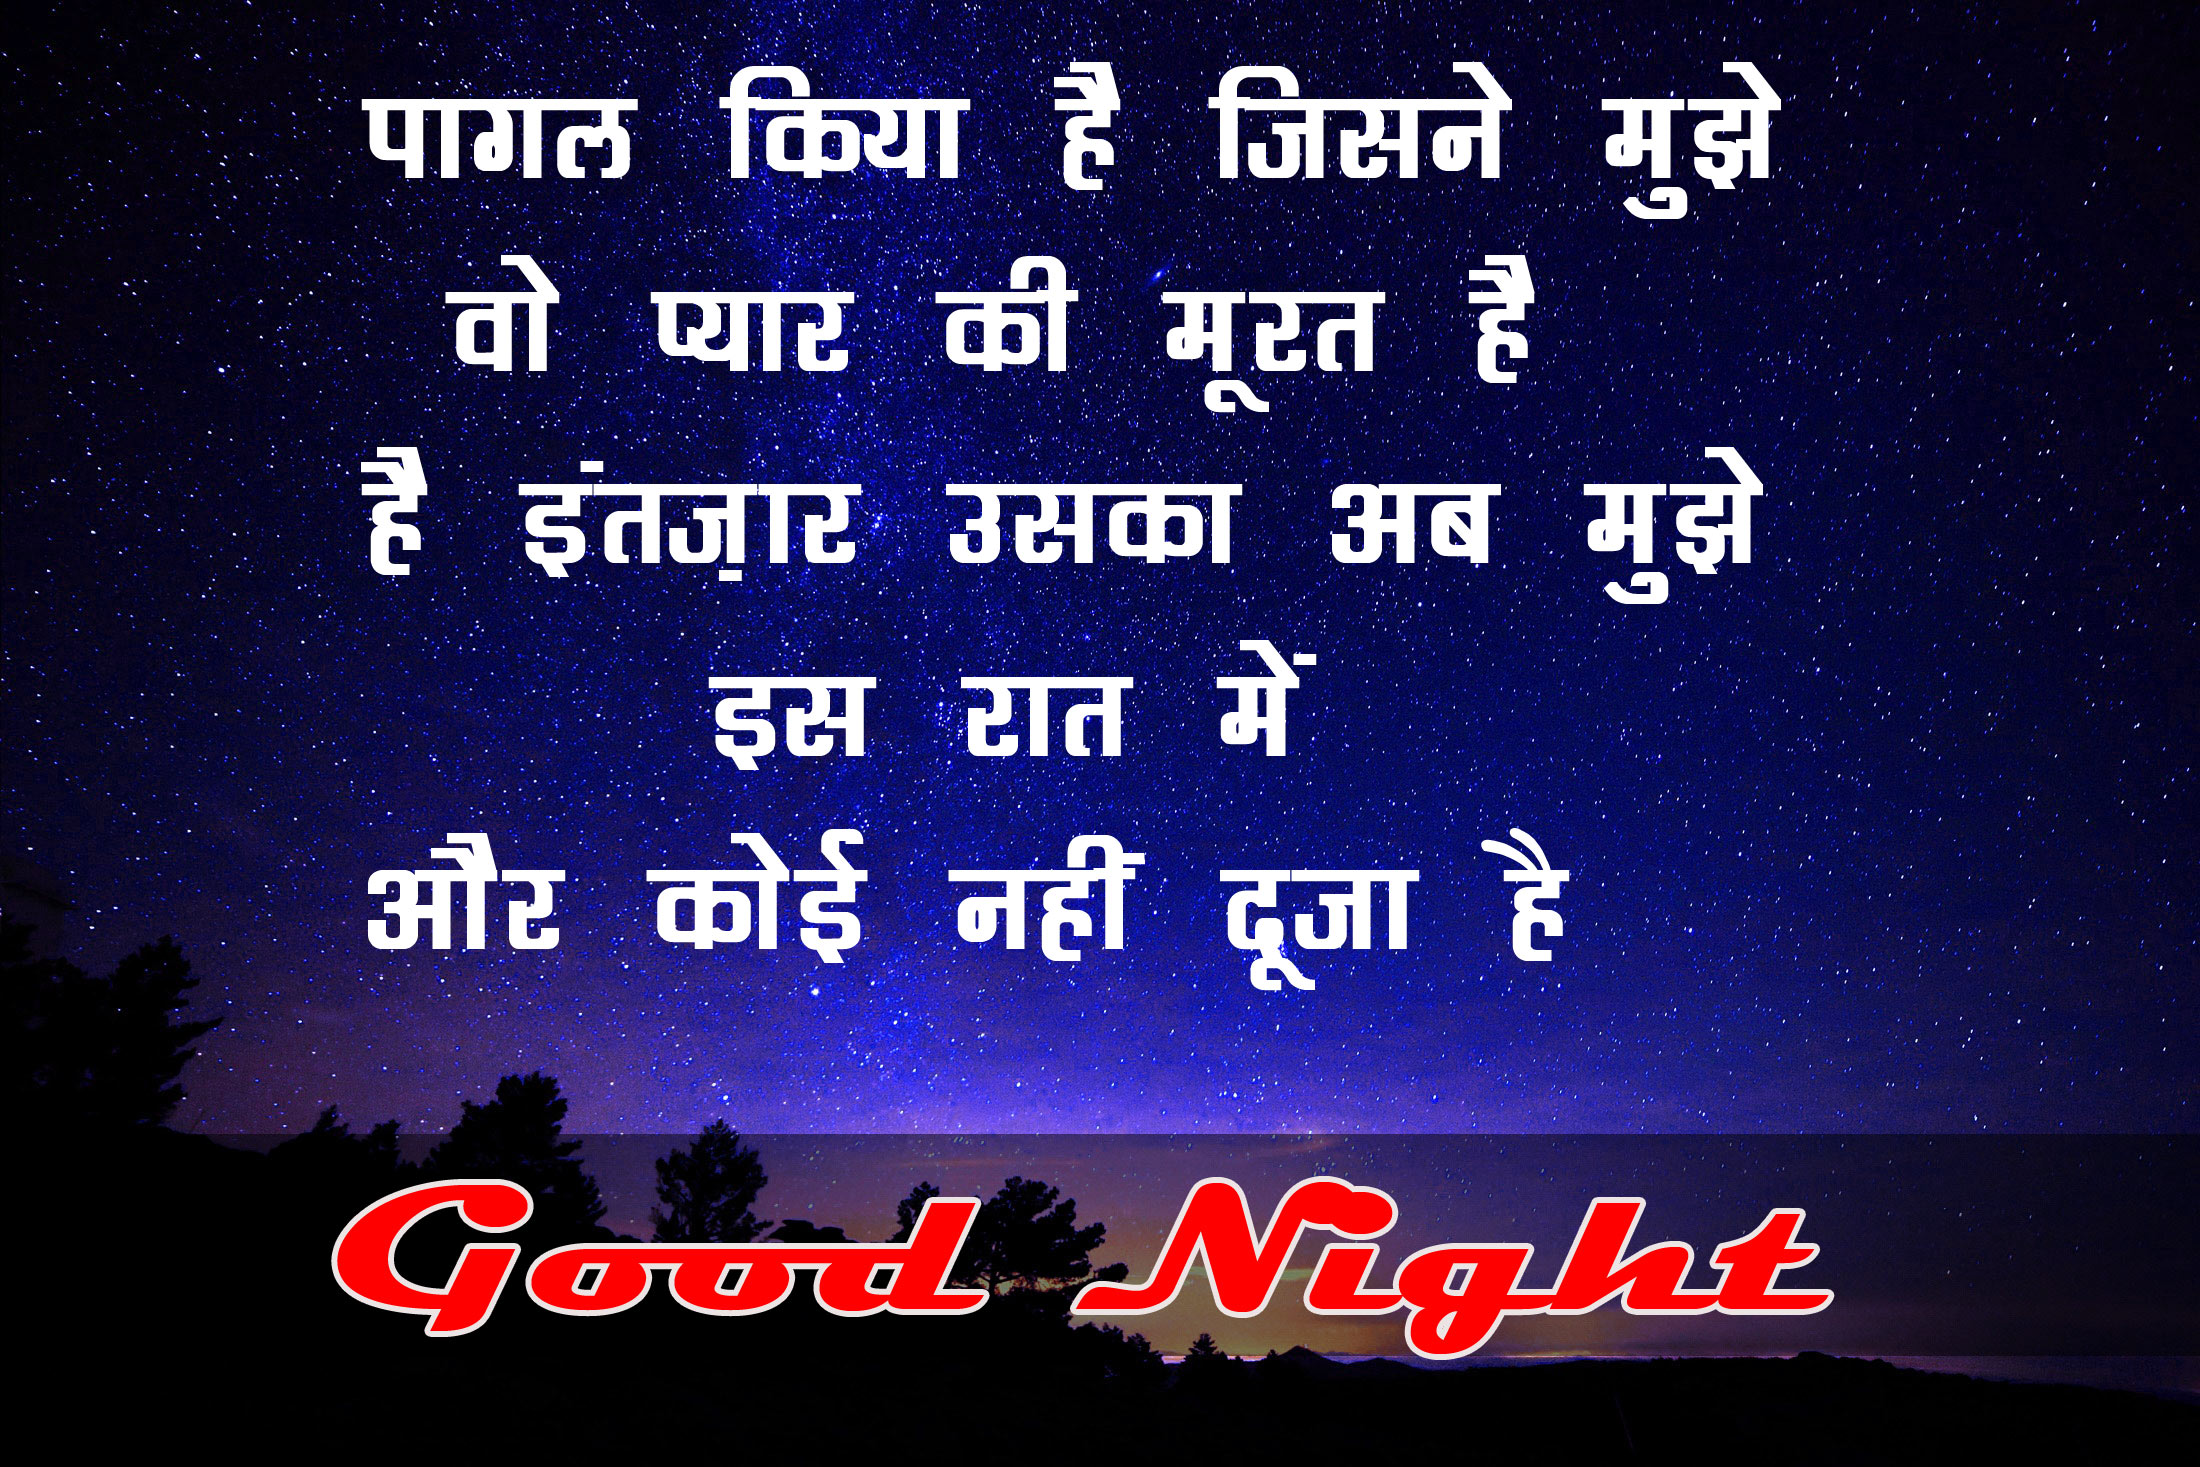 Hindi Shayari Good Night Pics